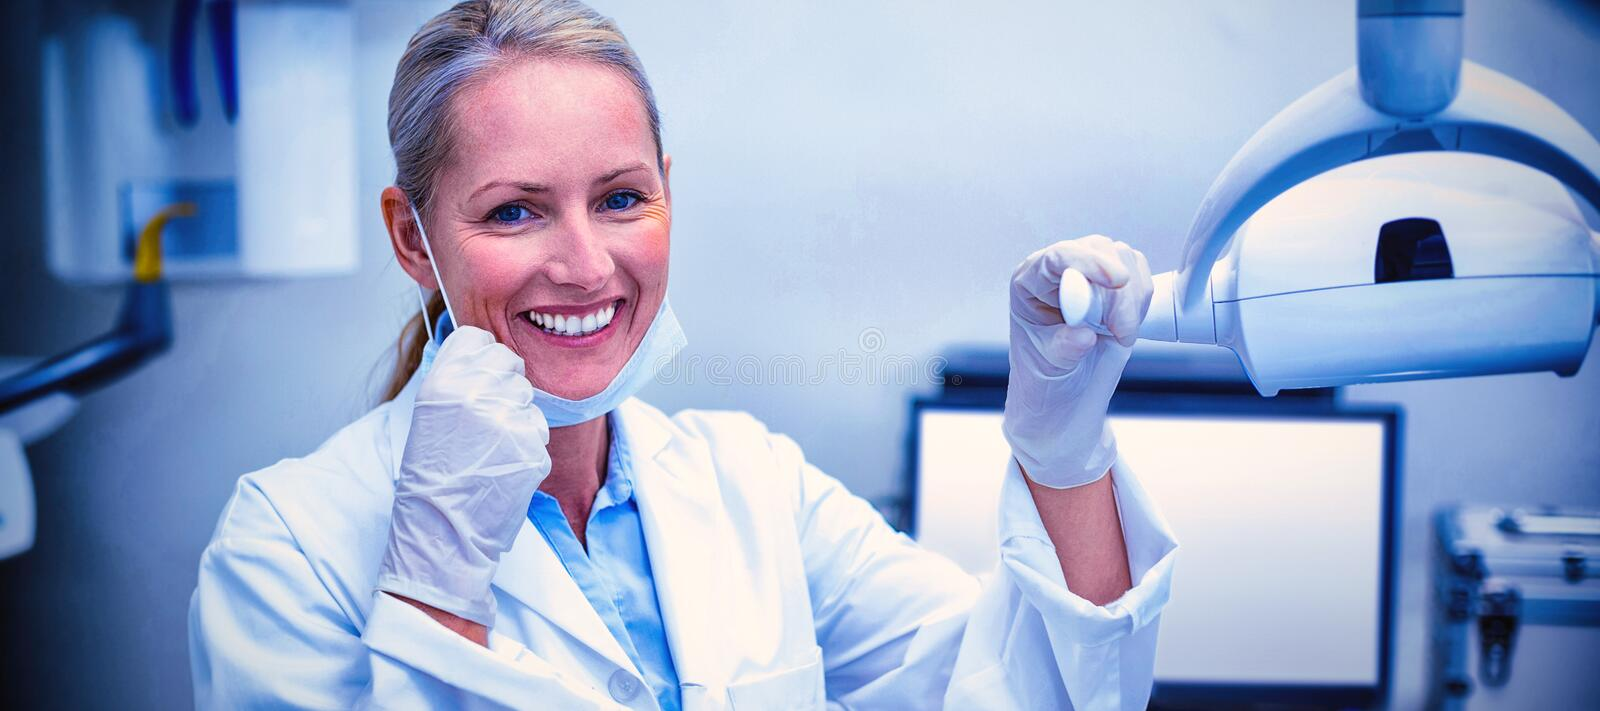 Female dentist holding dental lights. In dental clinic royalty free stock photography